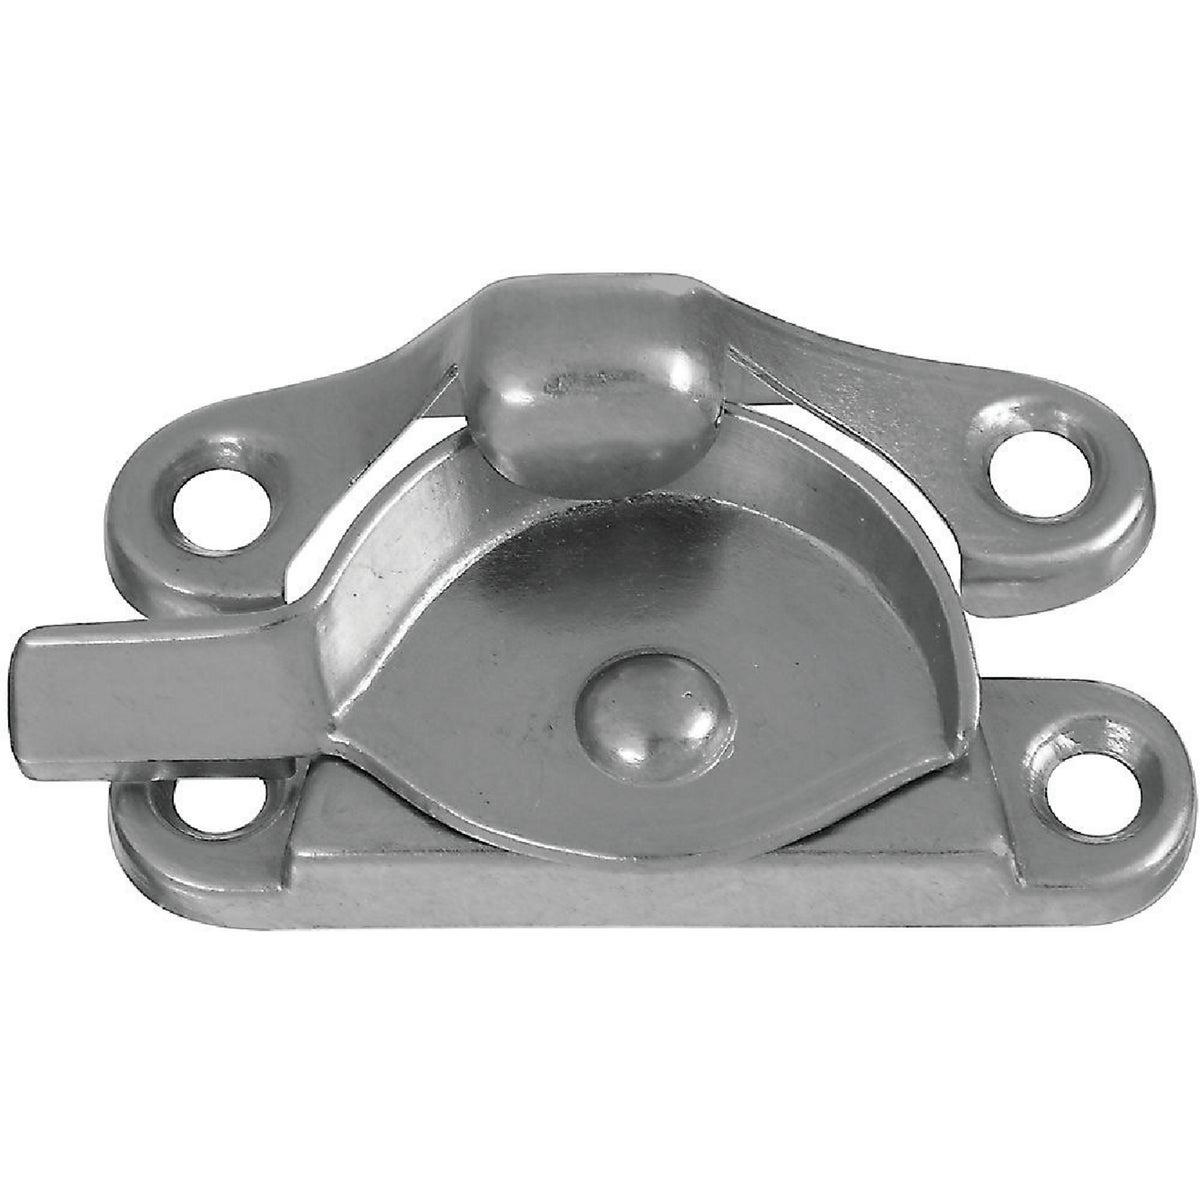 SN SASH LOCK - N325662 by National Mfg Co